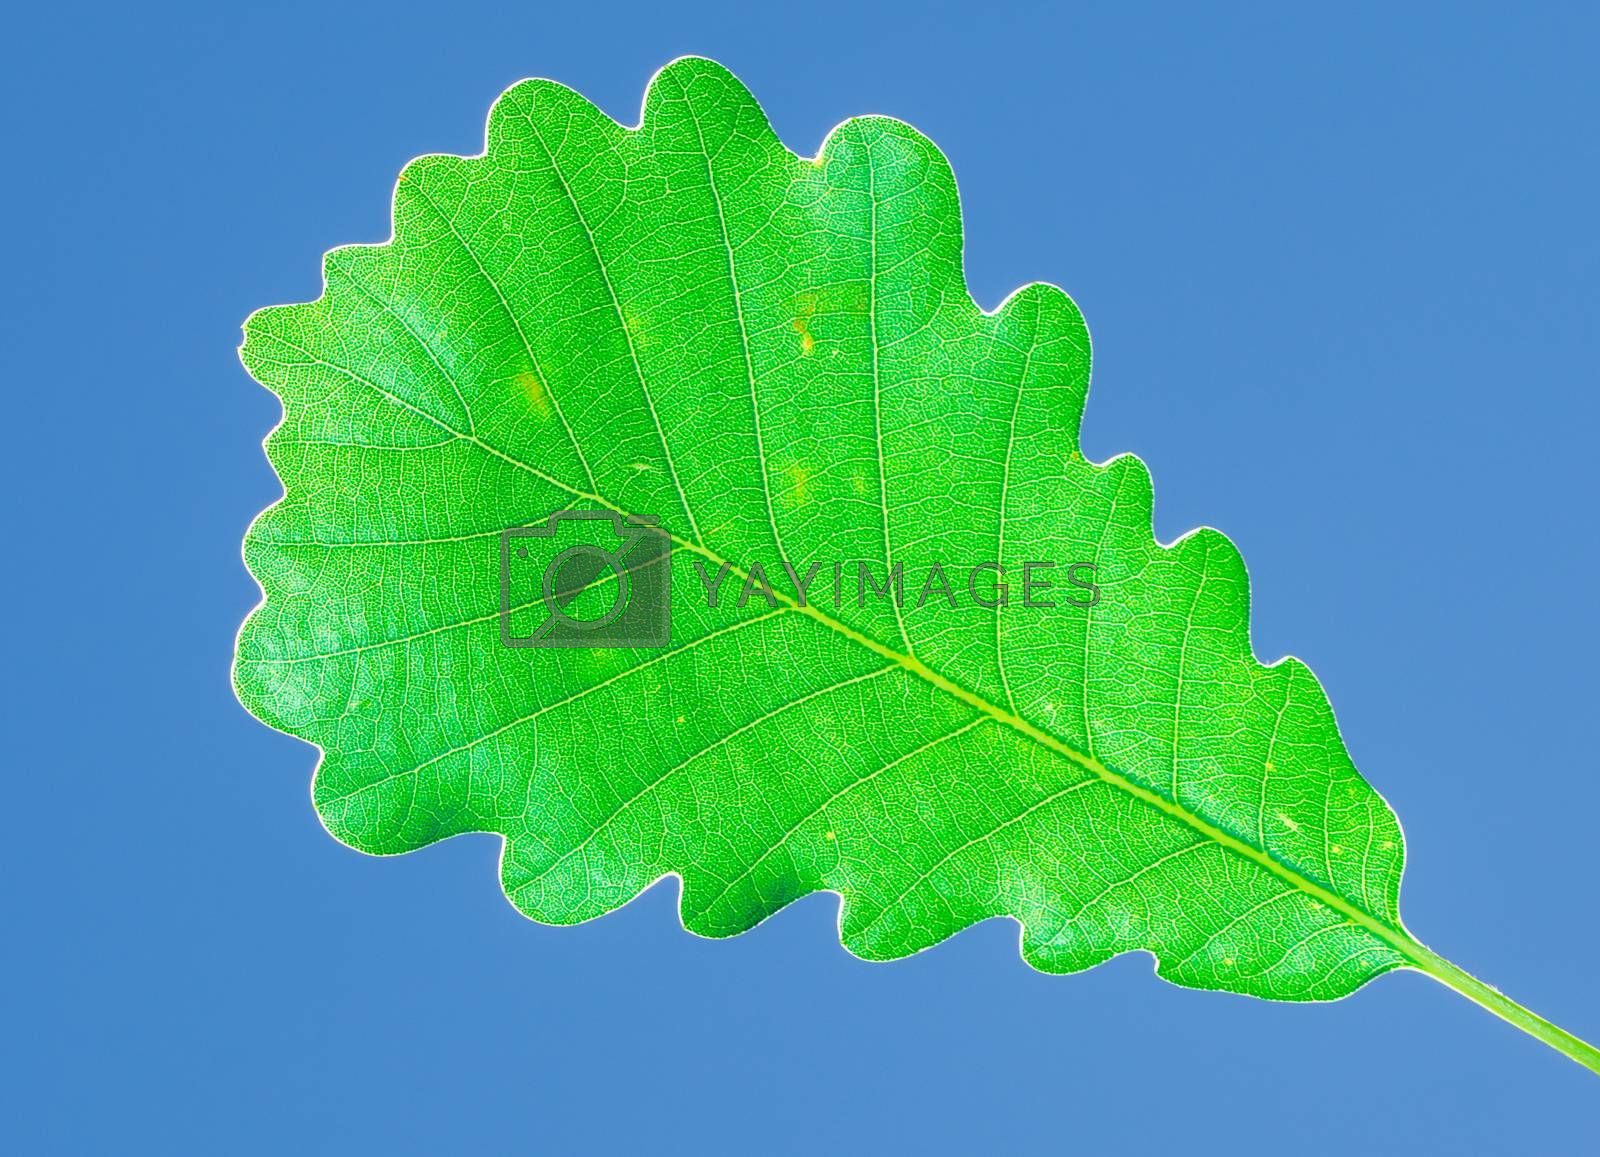 Royalty free image of oak leaf on the blue sky by faa069913827